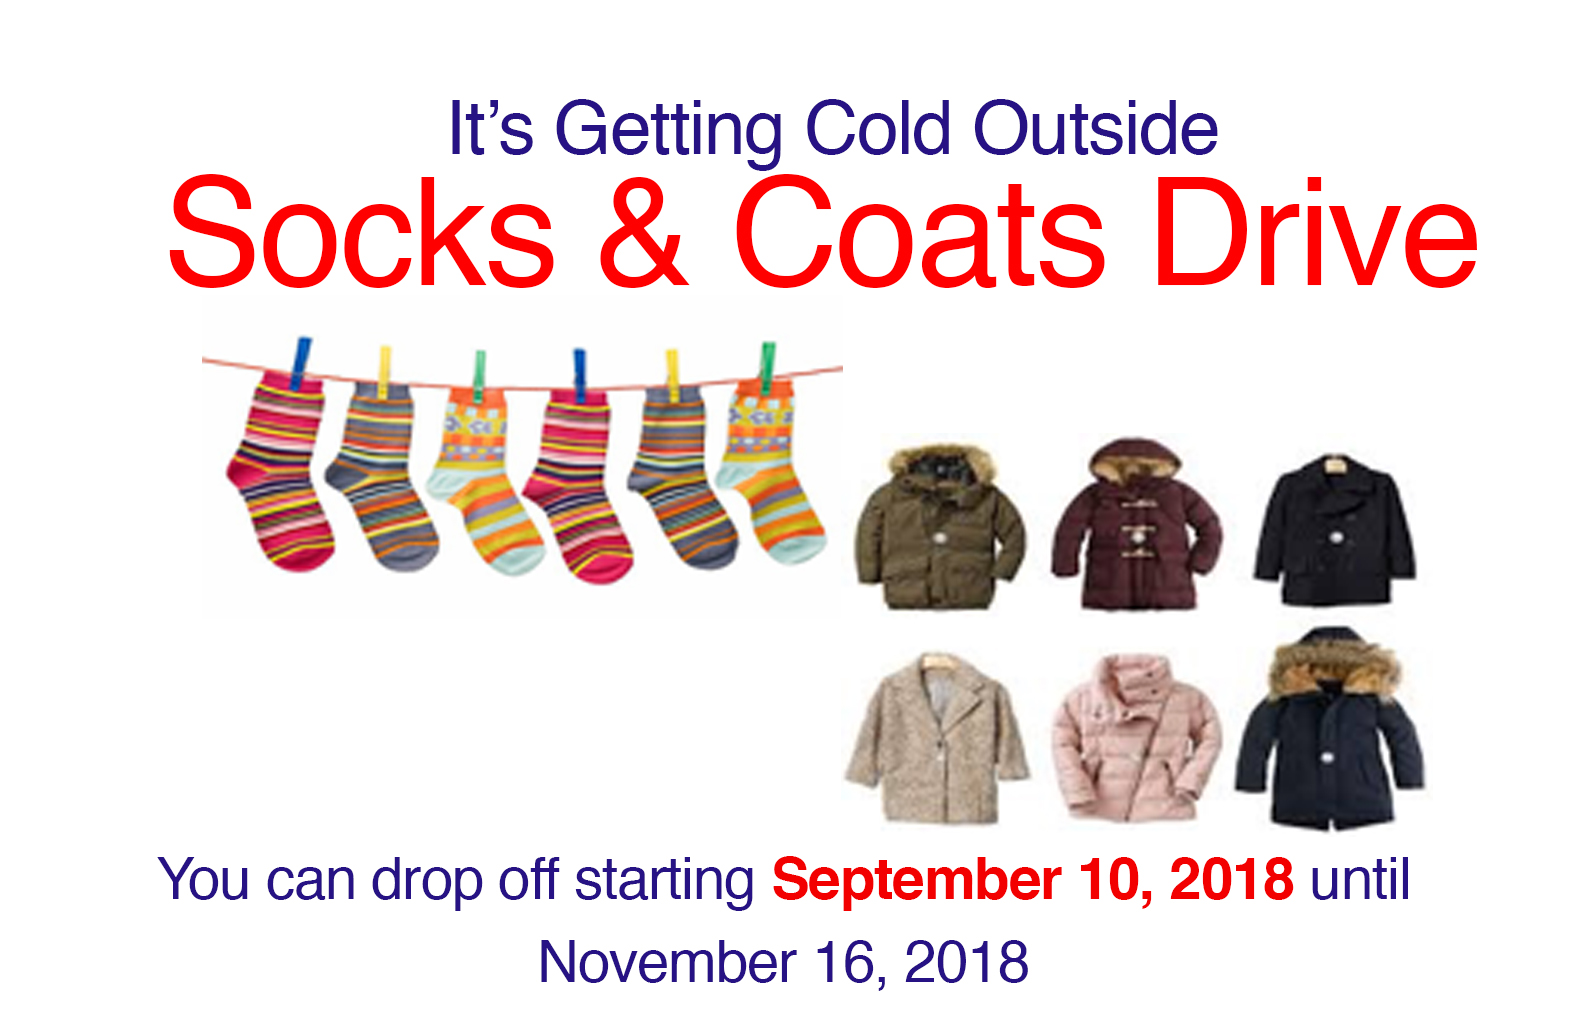 Socks and Coats Drive